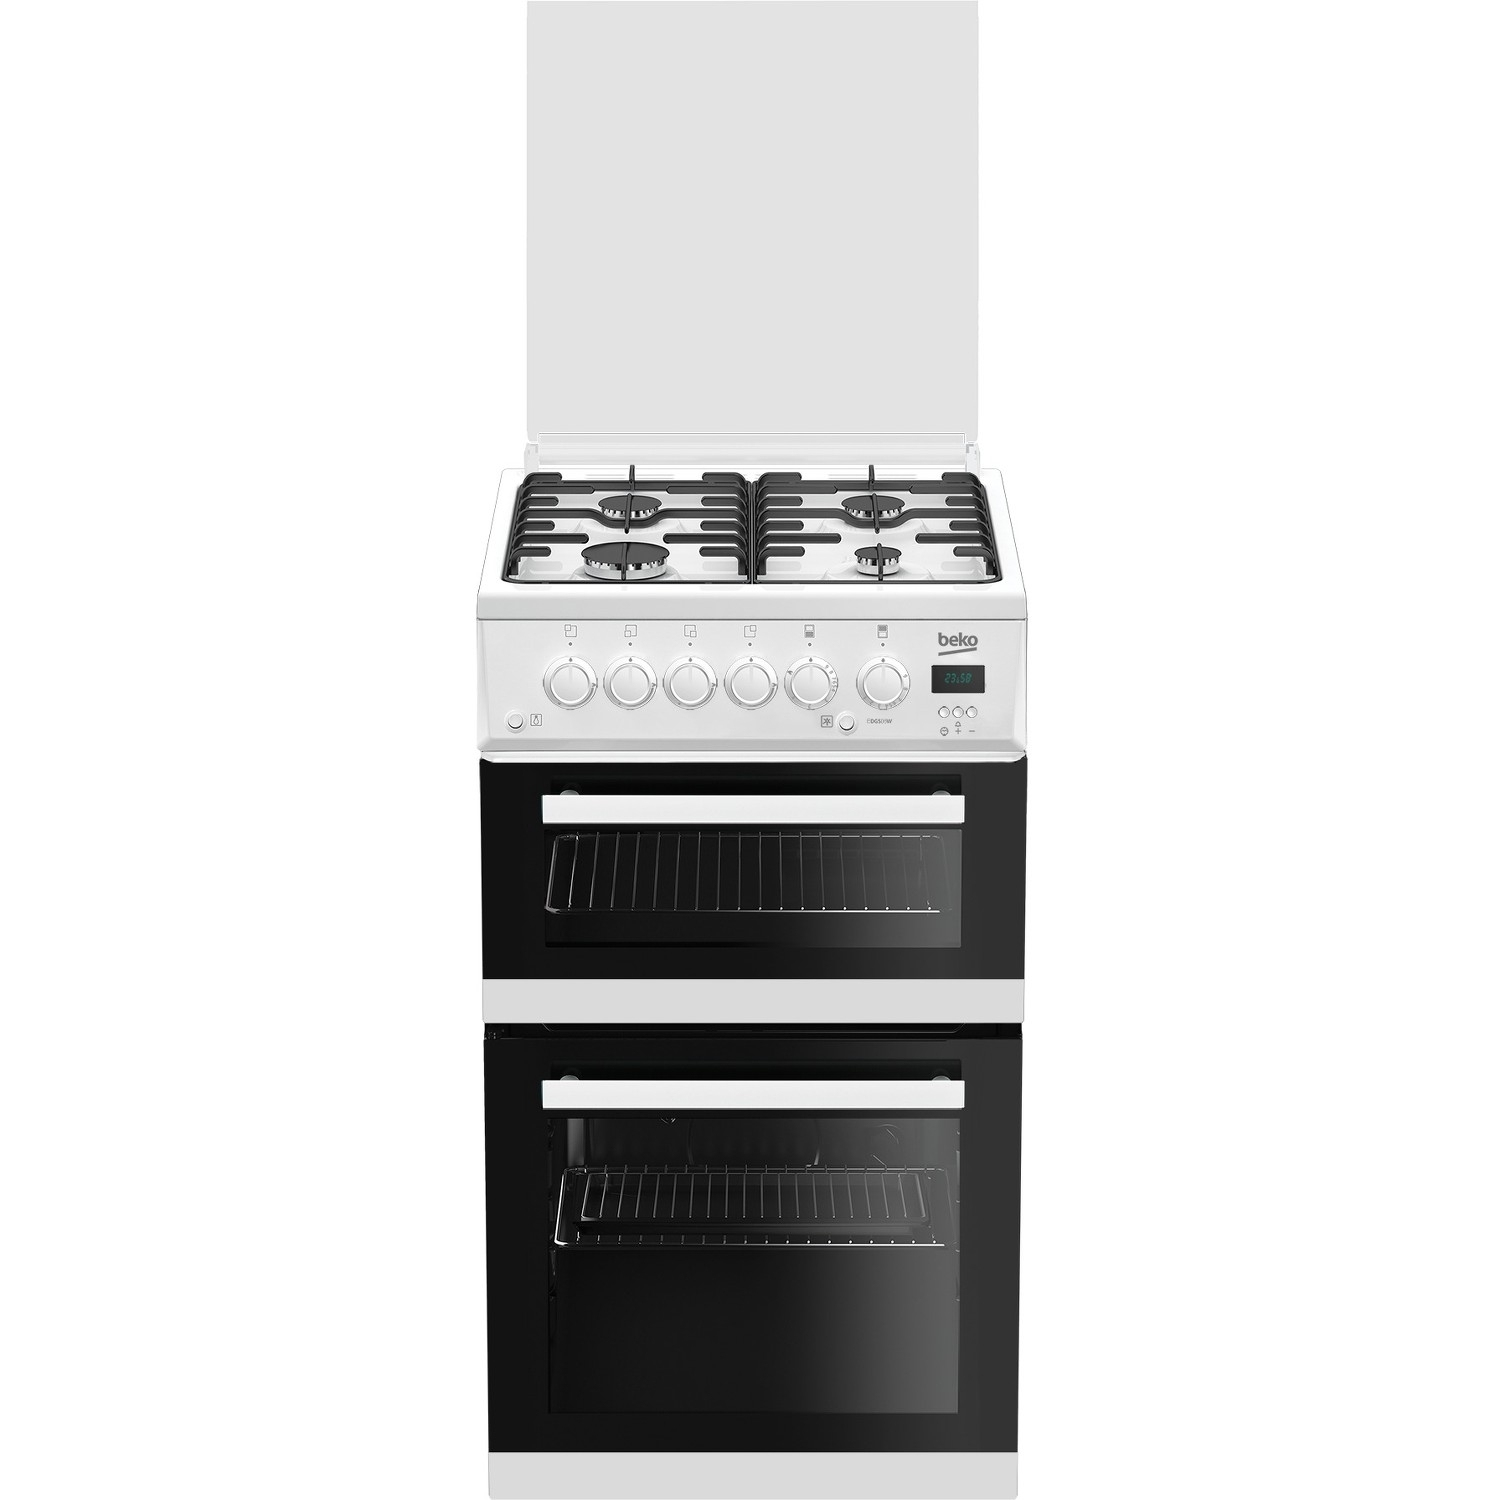 Beko 50cm Twin Cavity Gas Cooker with Glass Lid - White - 0